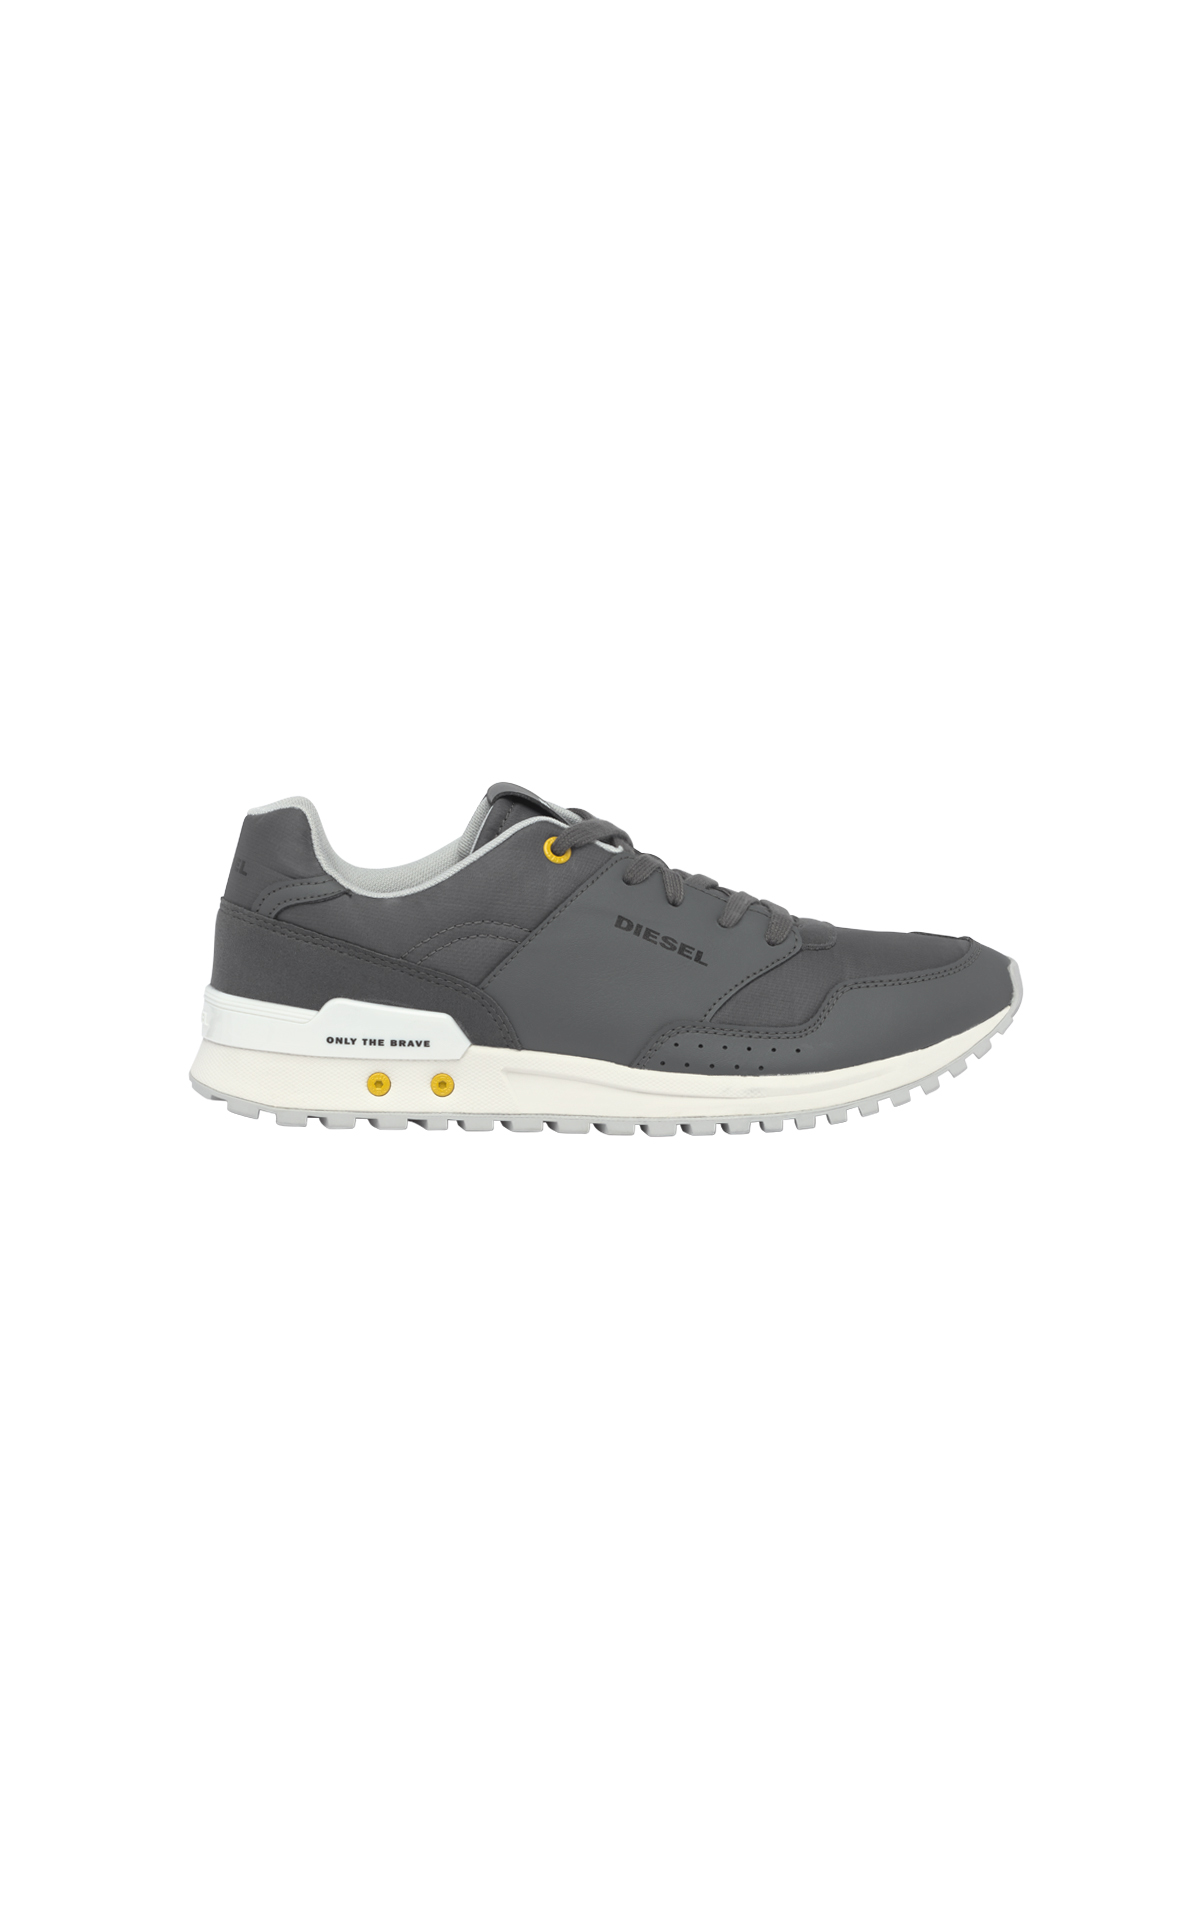 Grey sneakers man Diesel